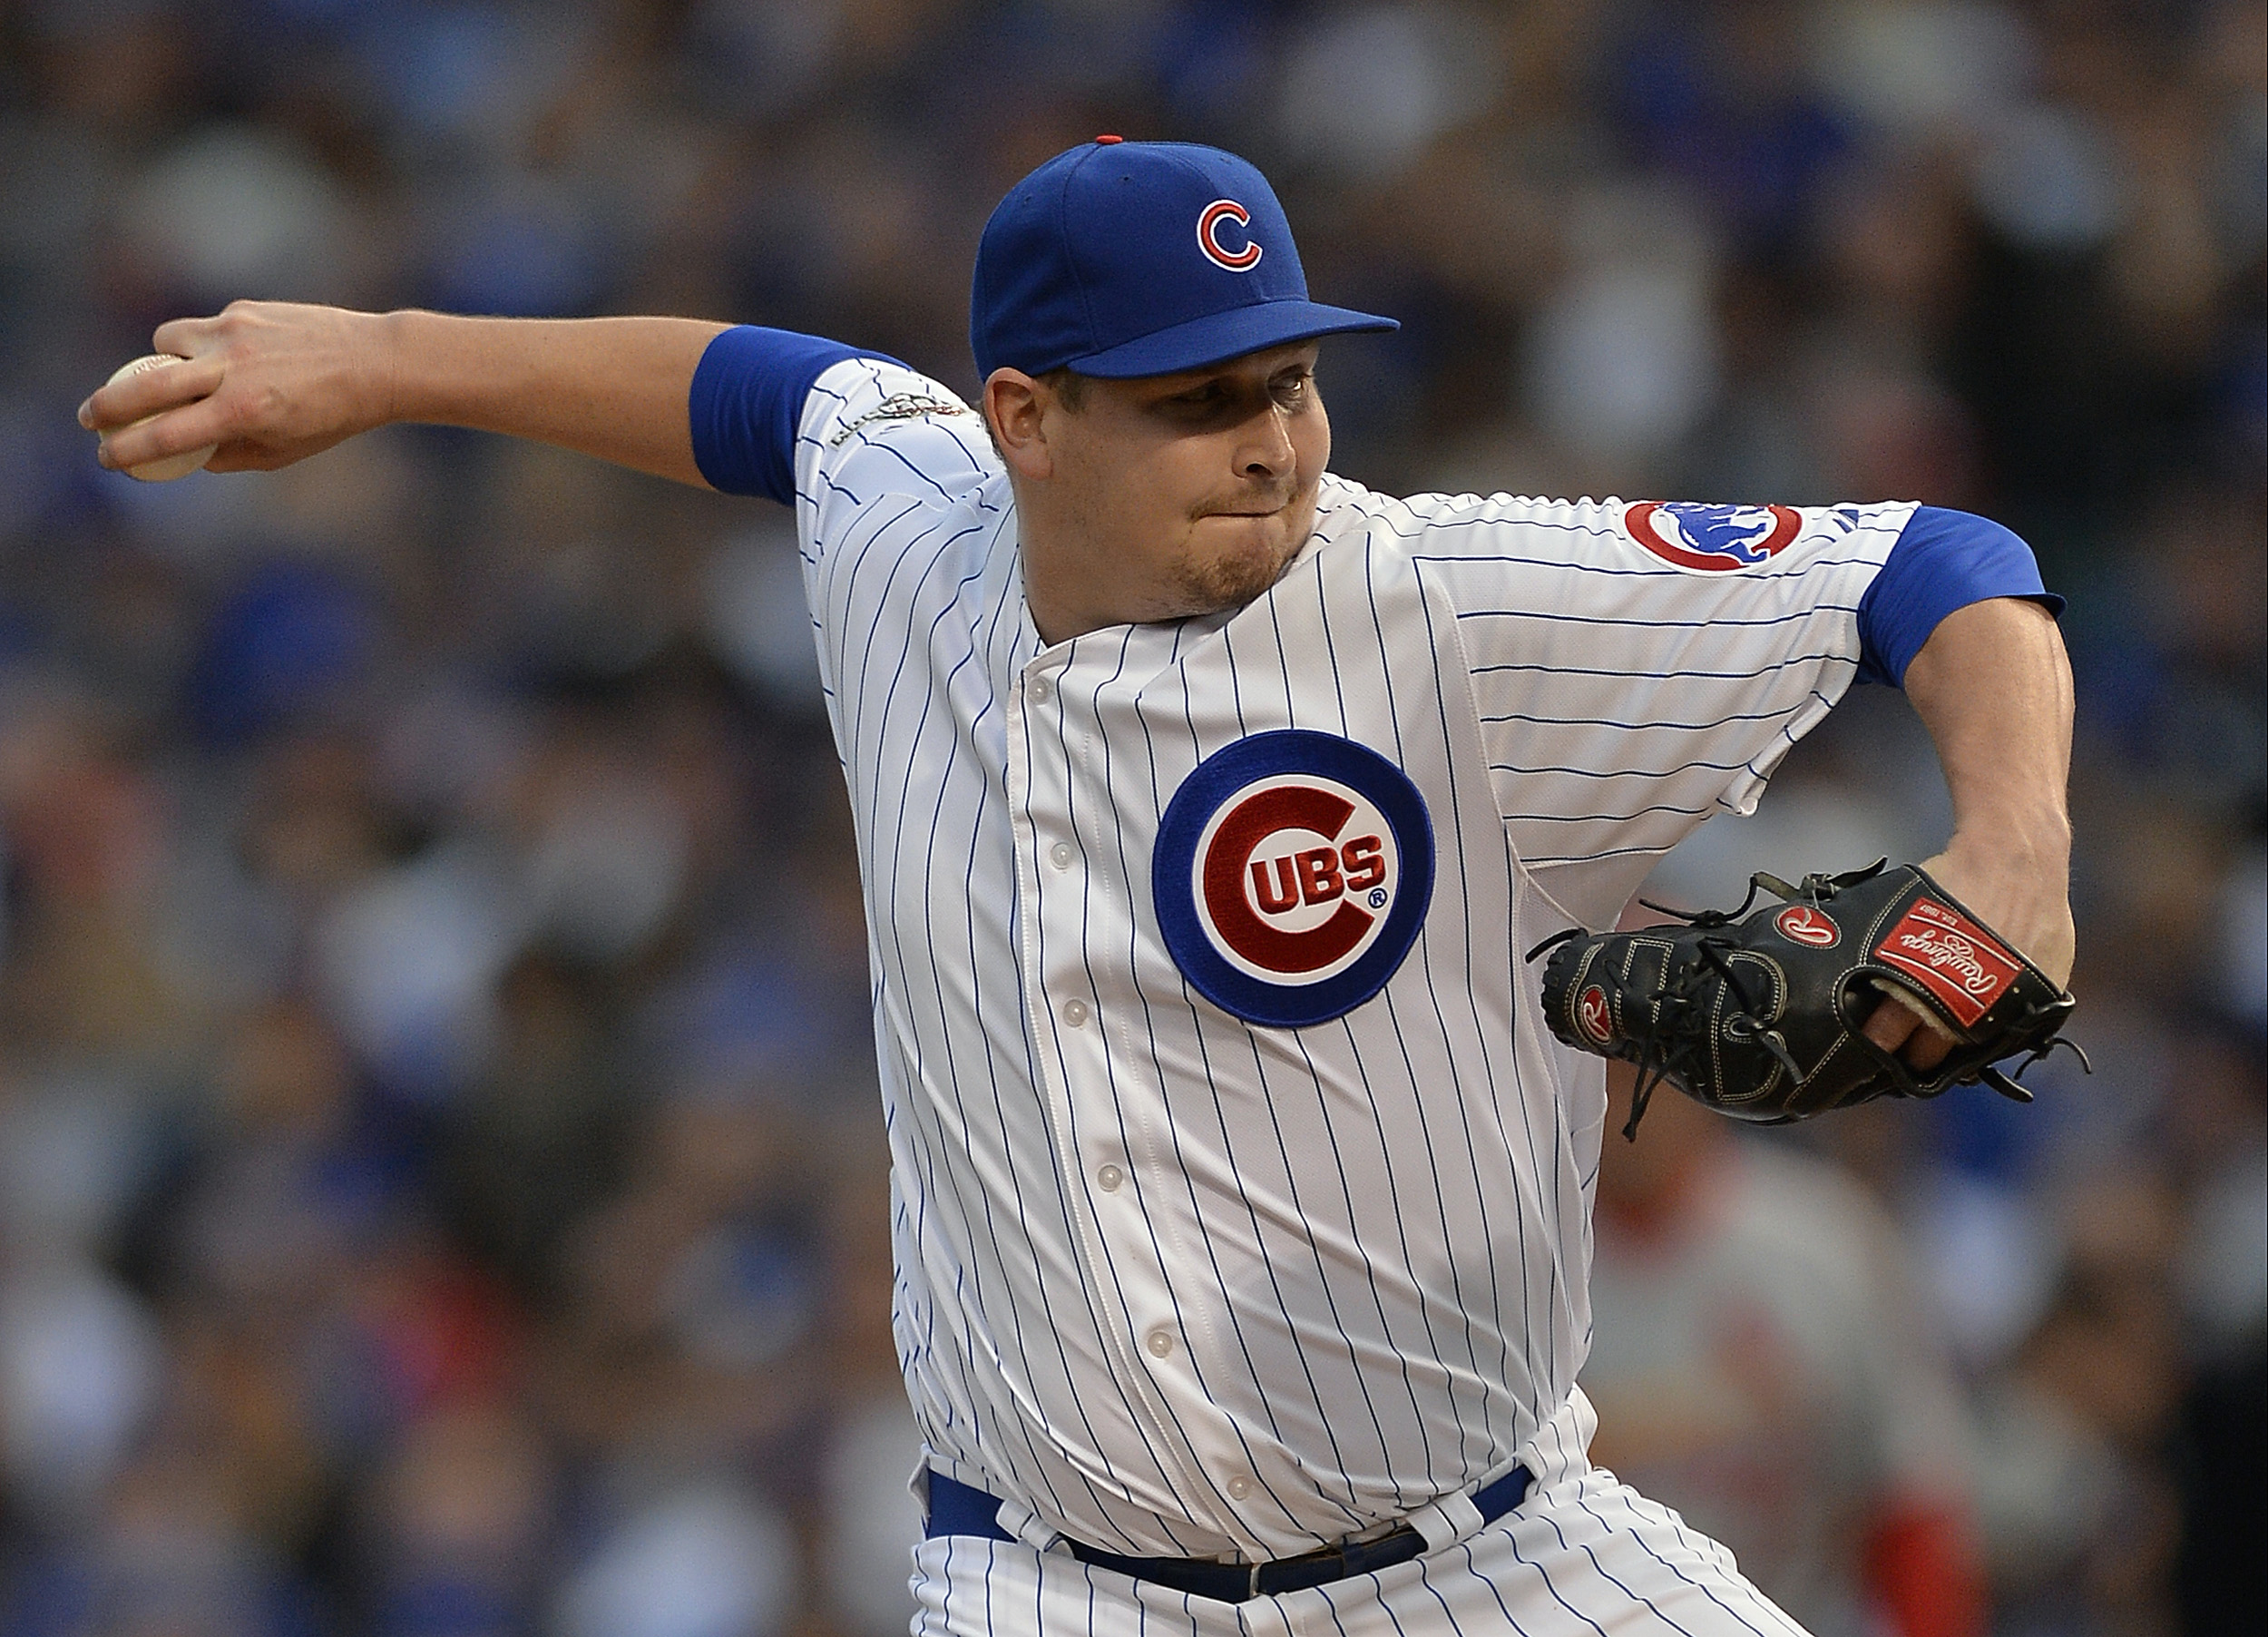 File- This Oct. 13, 2015, file photo shows Chicago Cubs relief pitcher Trevor Cahill throwing during Game 4 in baseball's National League Division Series against the St. Louis Cardinals, in Chicago. Cahill and the Chicago Cubs have finalized a $4.25 milli